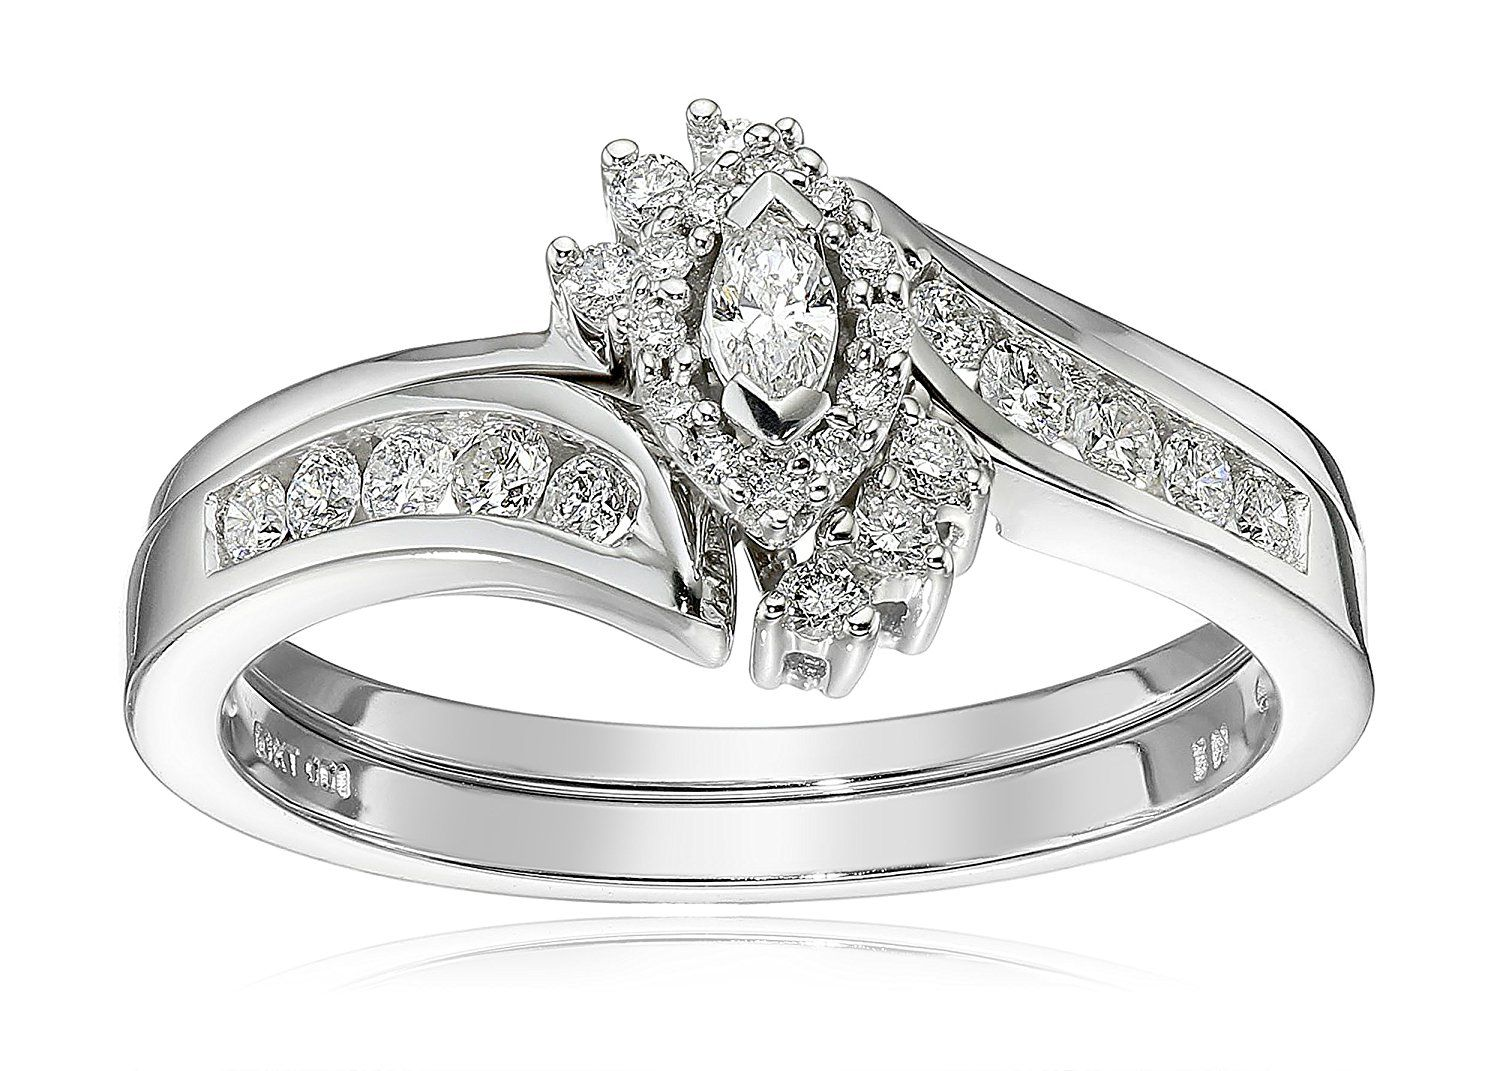 10k White Gold Marquise And Round Diamond Byp Ring With Interlocking Band Bridal Set 0 33